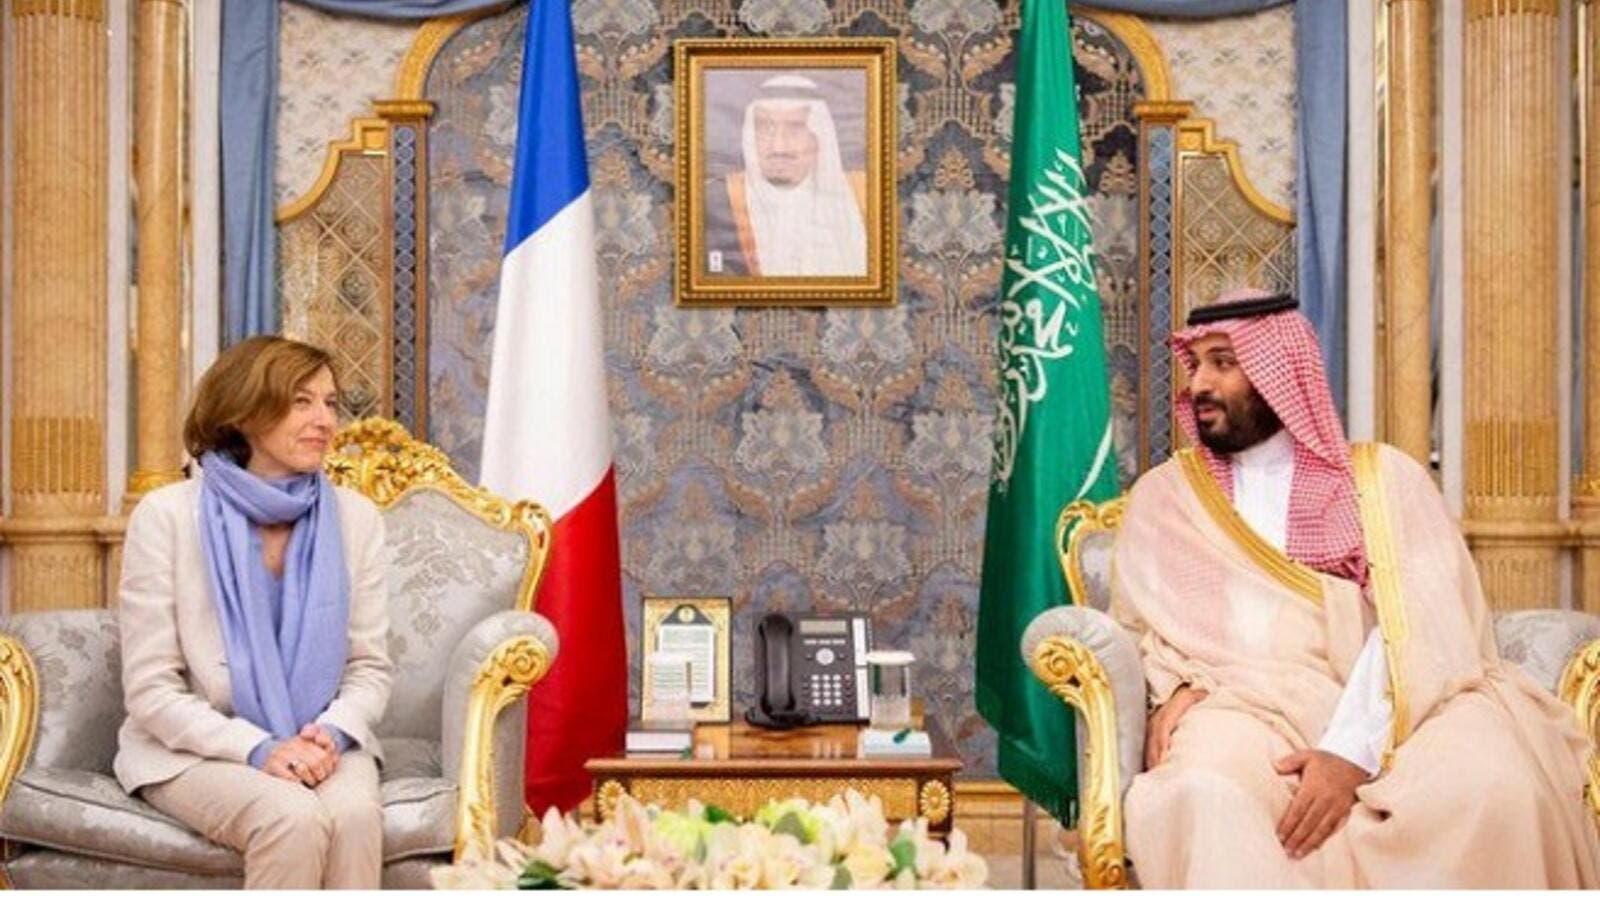 French Minister of the Armed Forces Florence Barley (L) and Saudi Crown Prince Mohammad bin Salman. (AN)